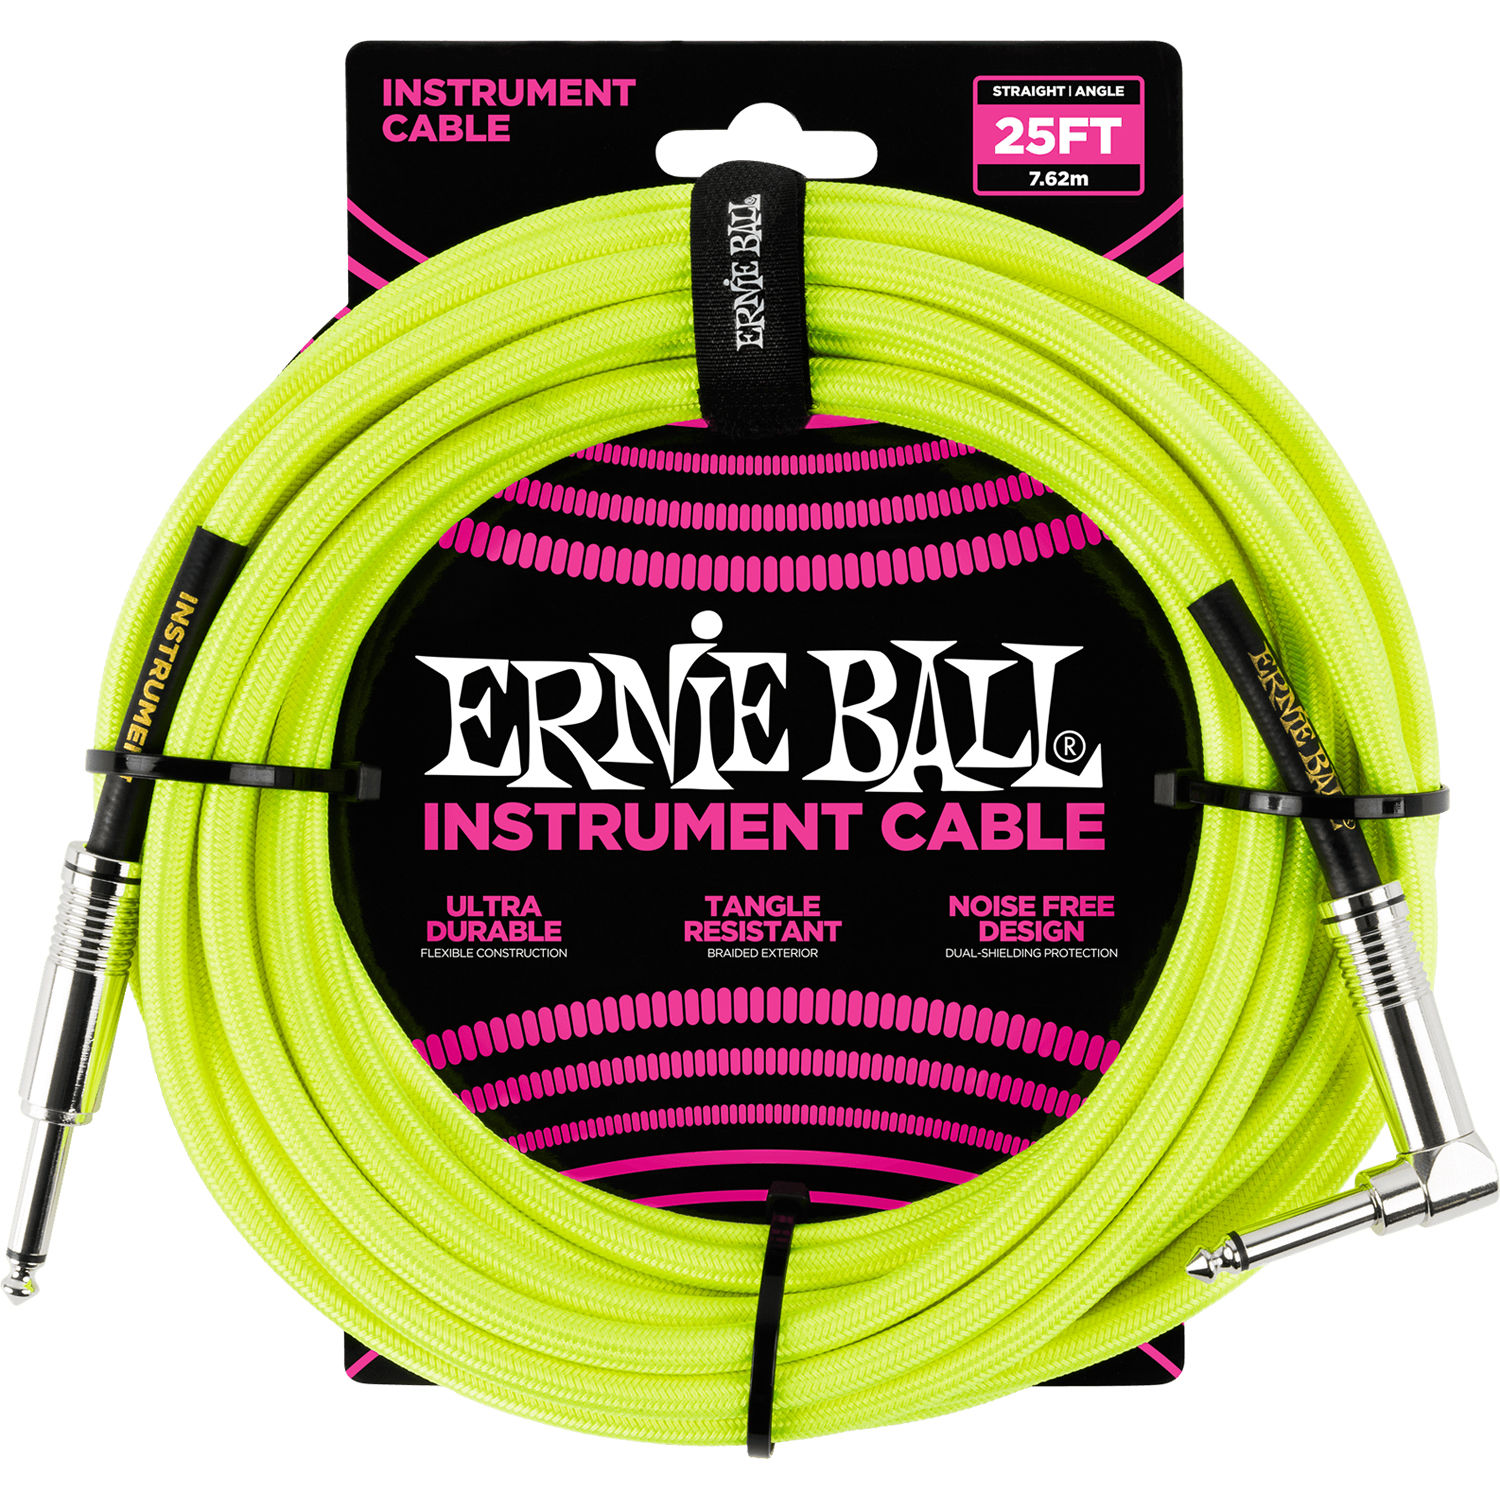 ernie ball 1 4 straight to 1 4 right angle p06057